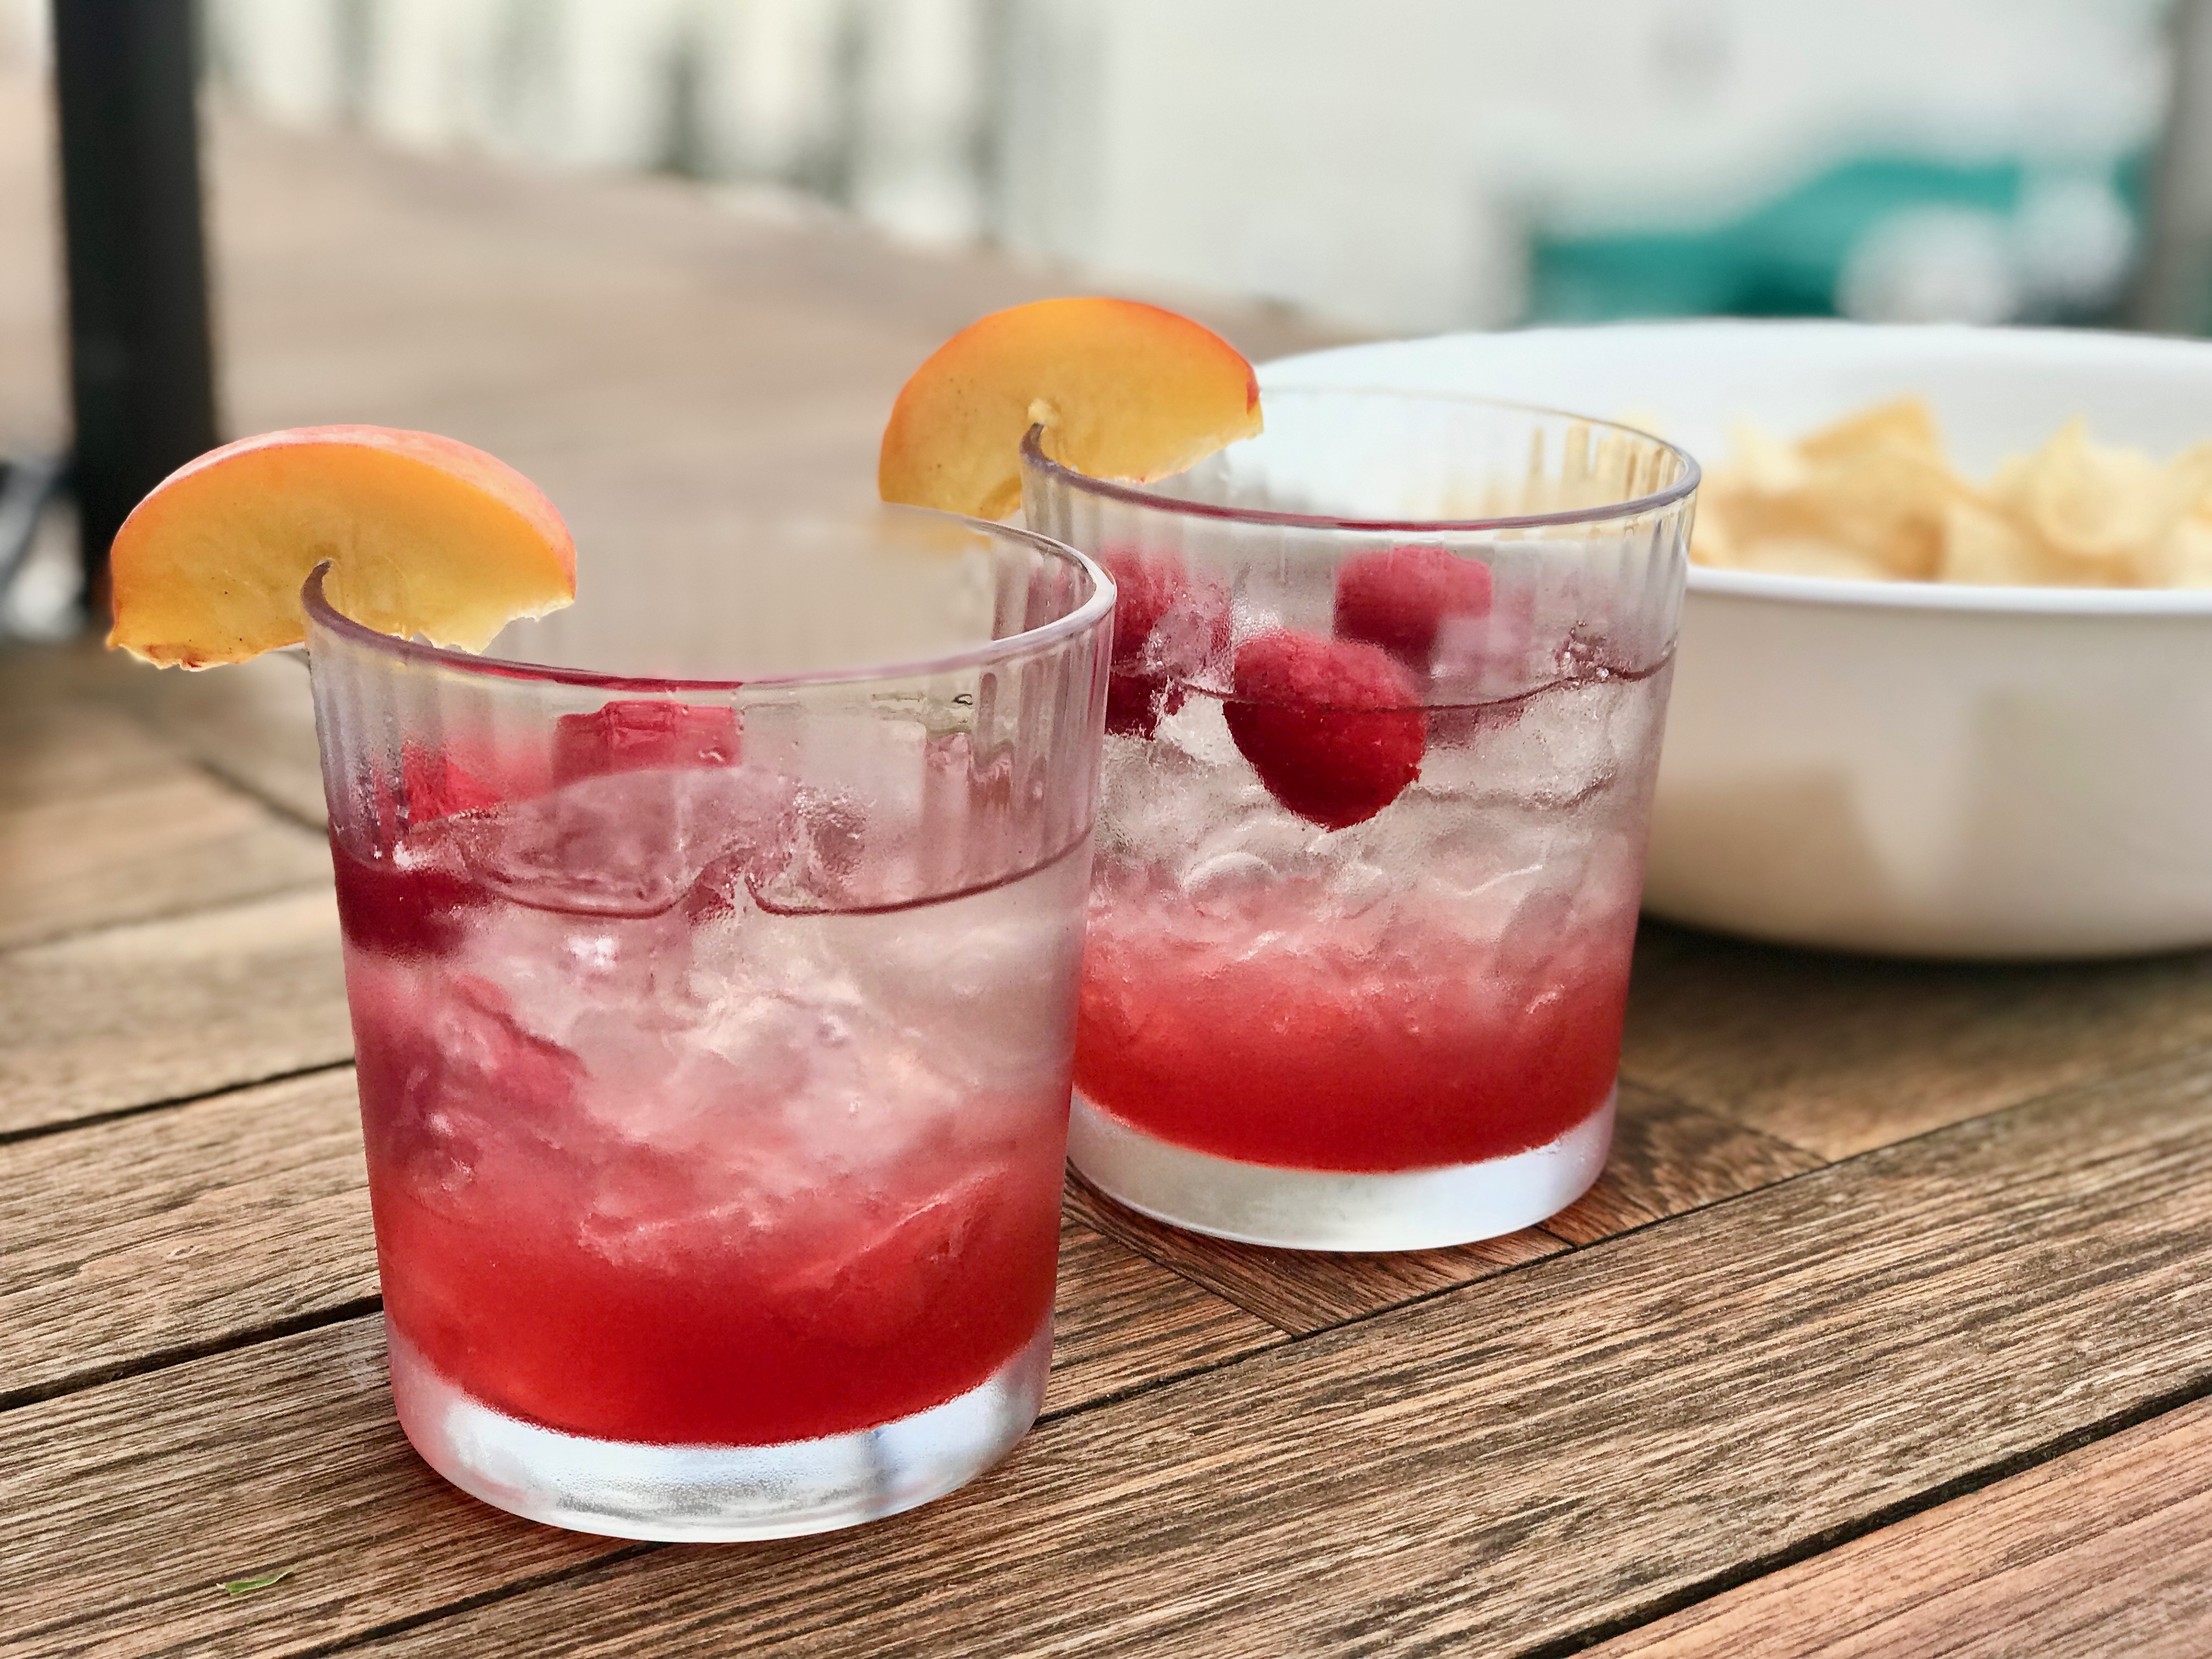 raspberry peach shrub mixed with vodka makes a lively cocktail